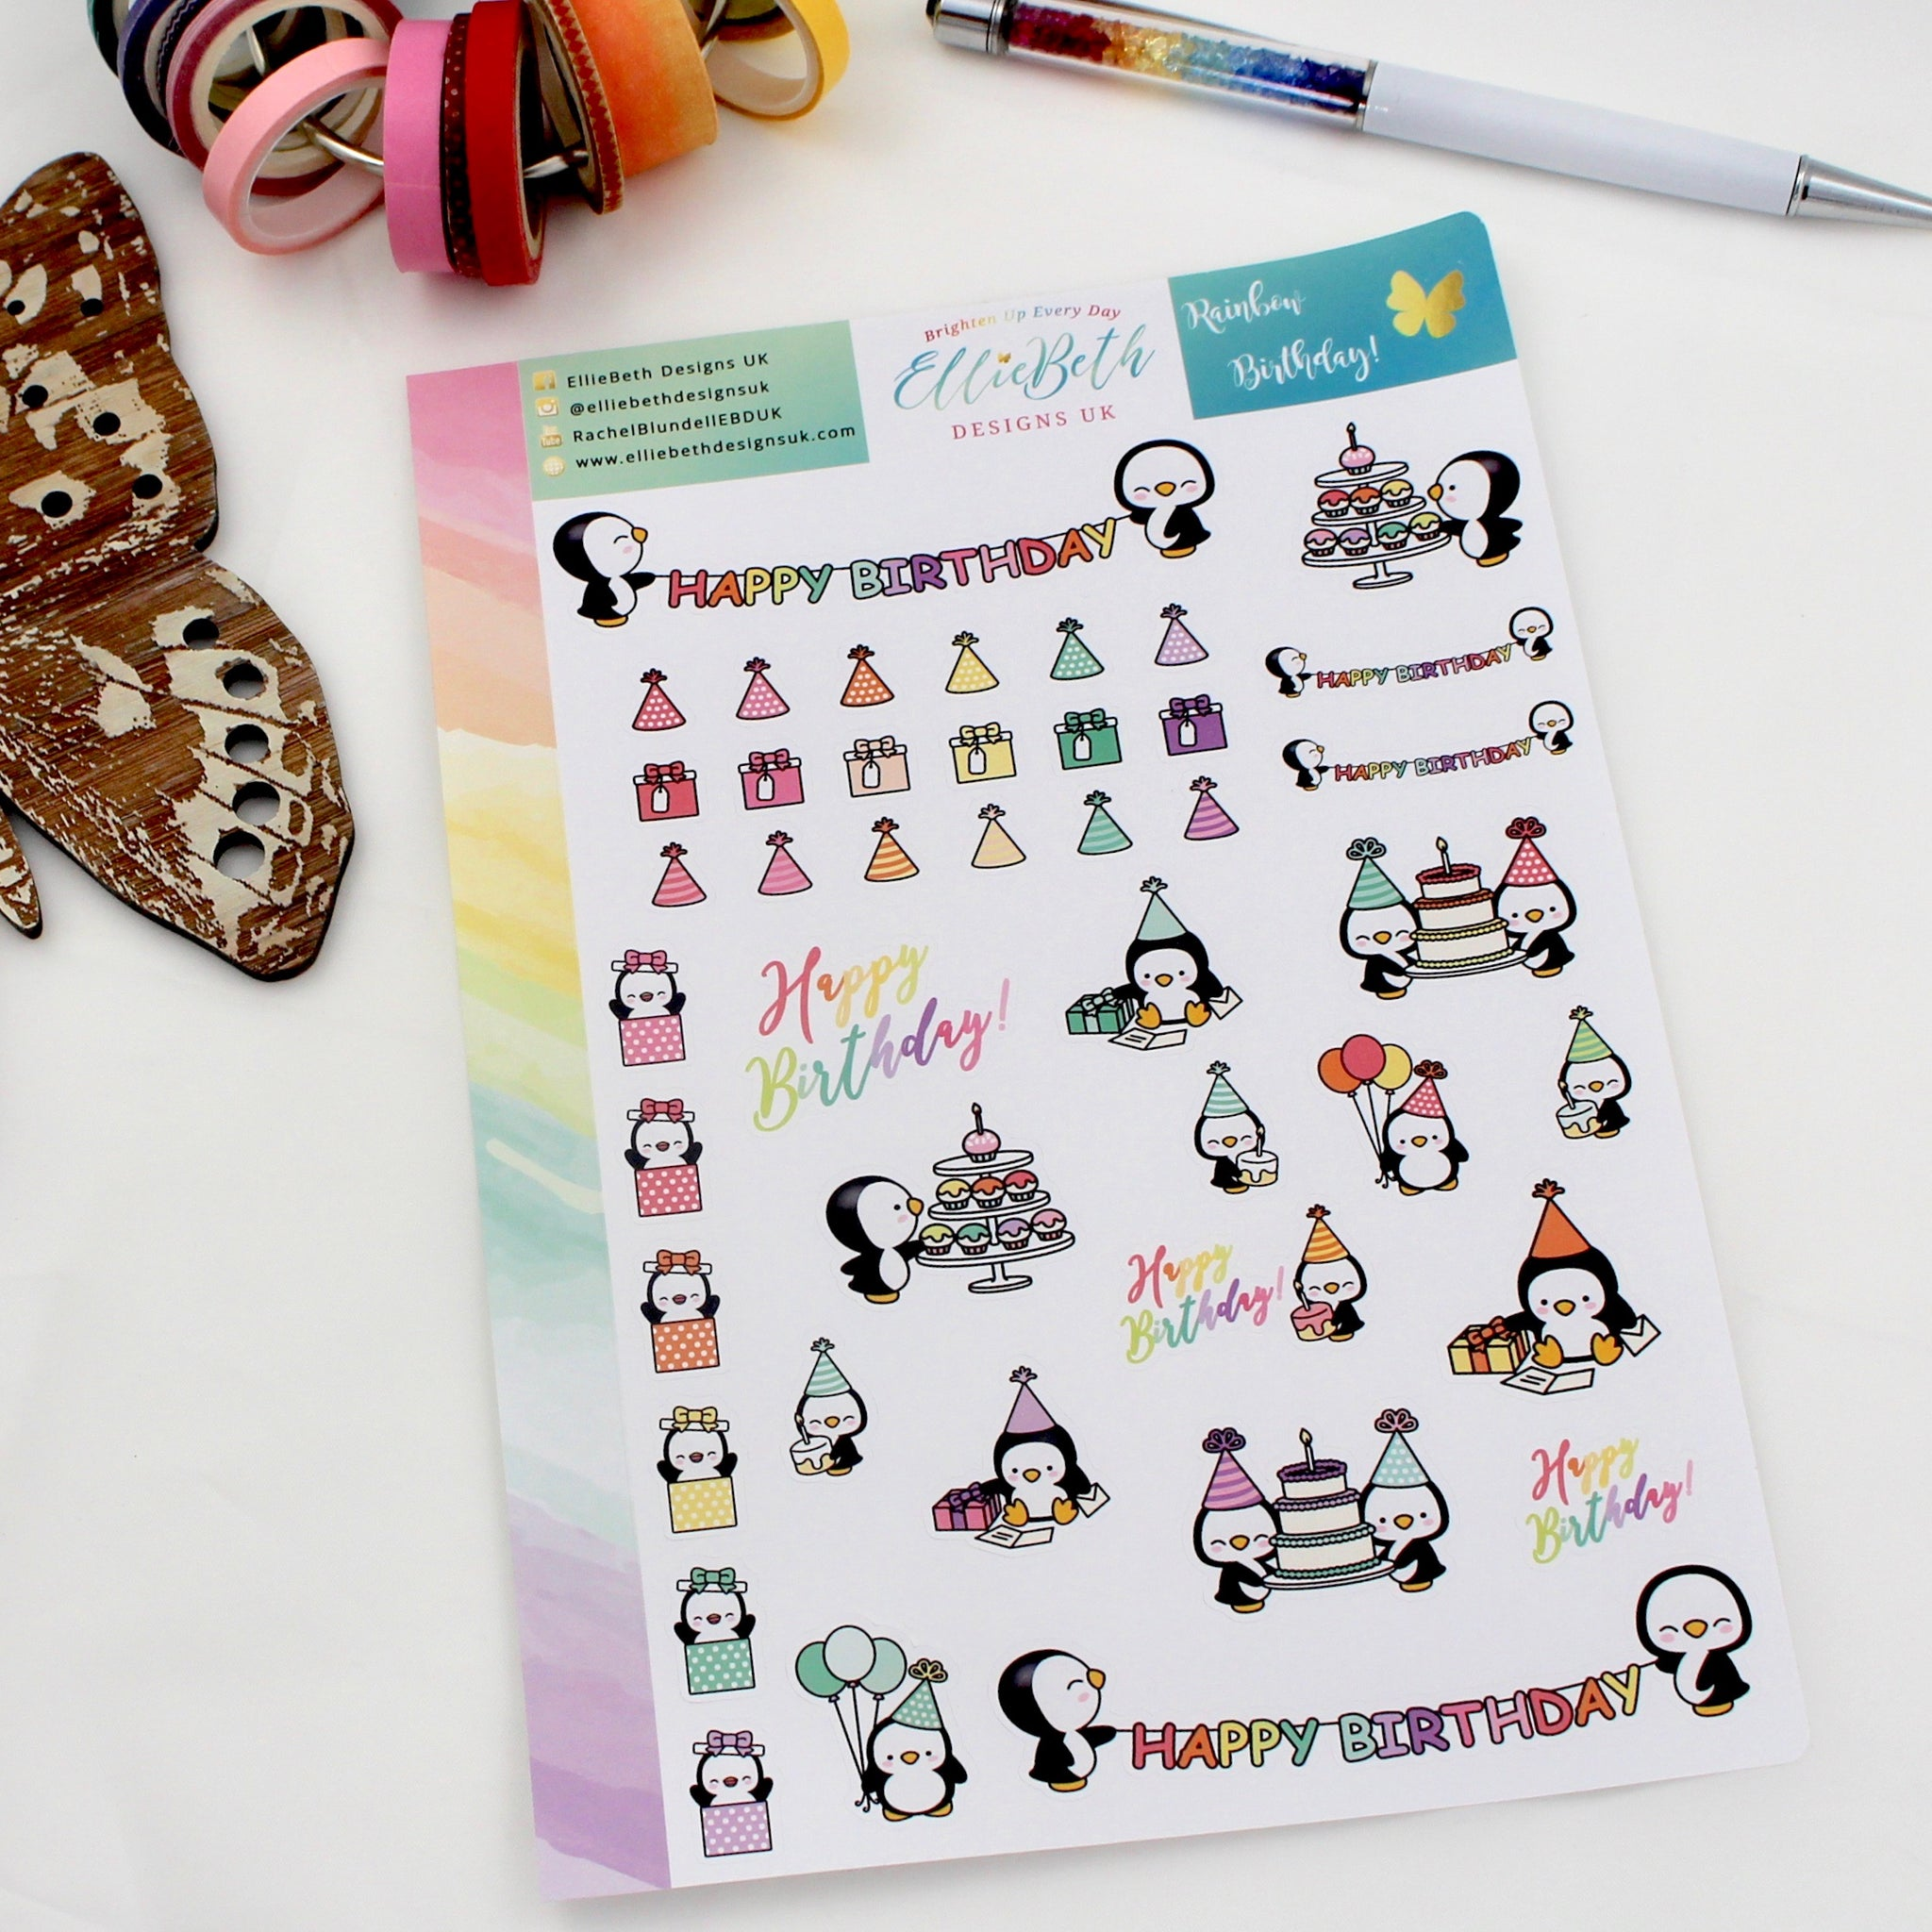 'Rainbow Birthday' - Decorative Sheet -  A5 binder ready planner stickers